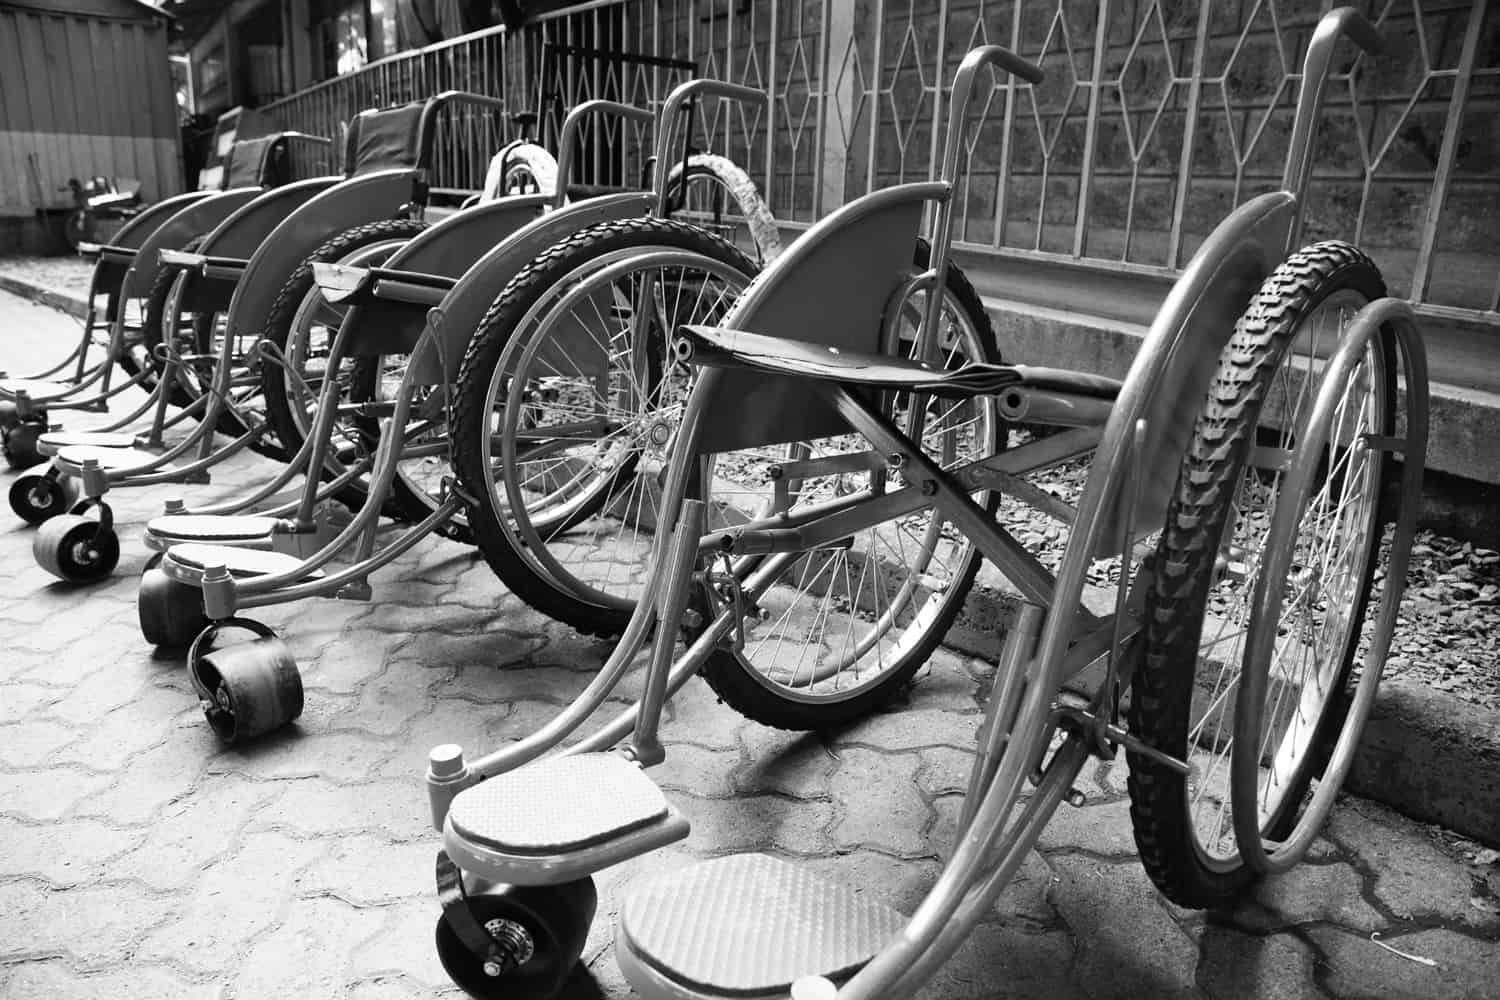 image of a row of wheel chairs.